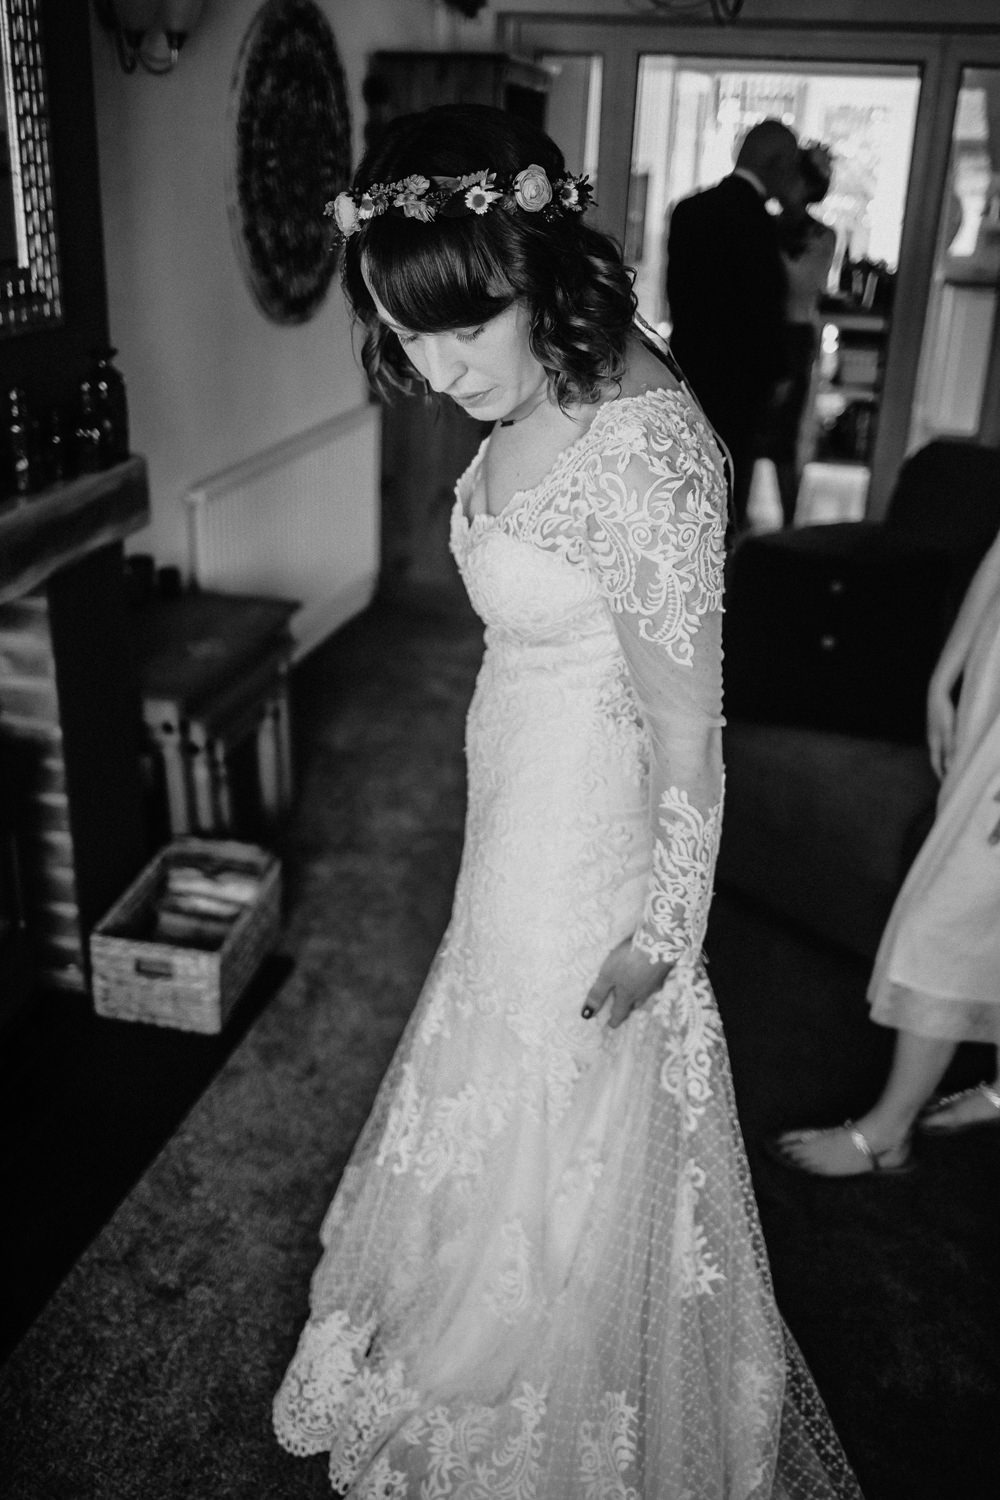 Maggie Sottero Dress Gown Lace Sleeves Bride Bridal Furtho Manor Farm Wedding Ben Cotterill Photography